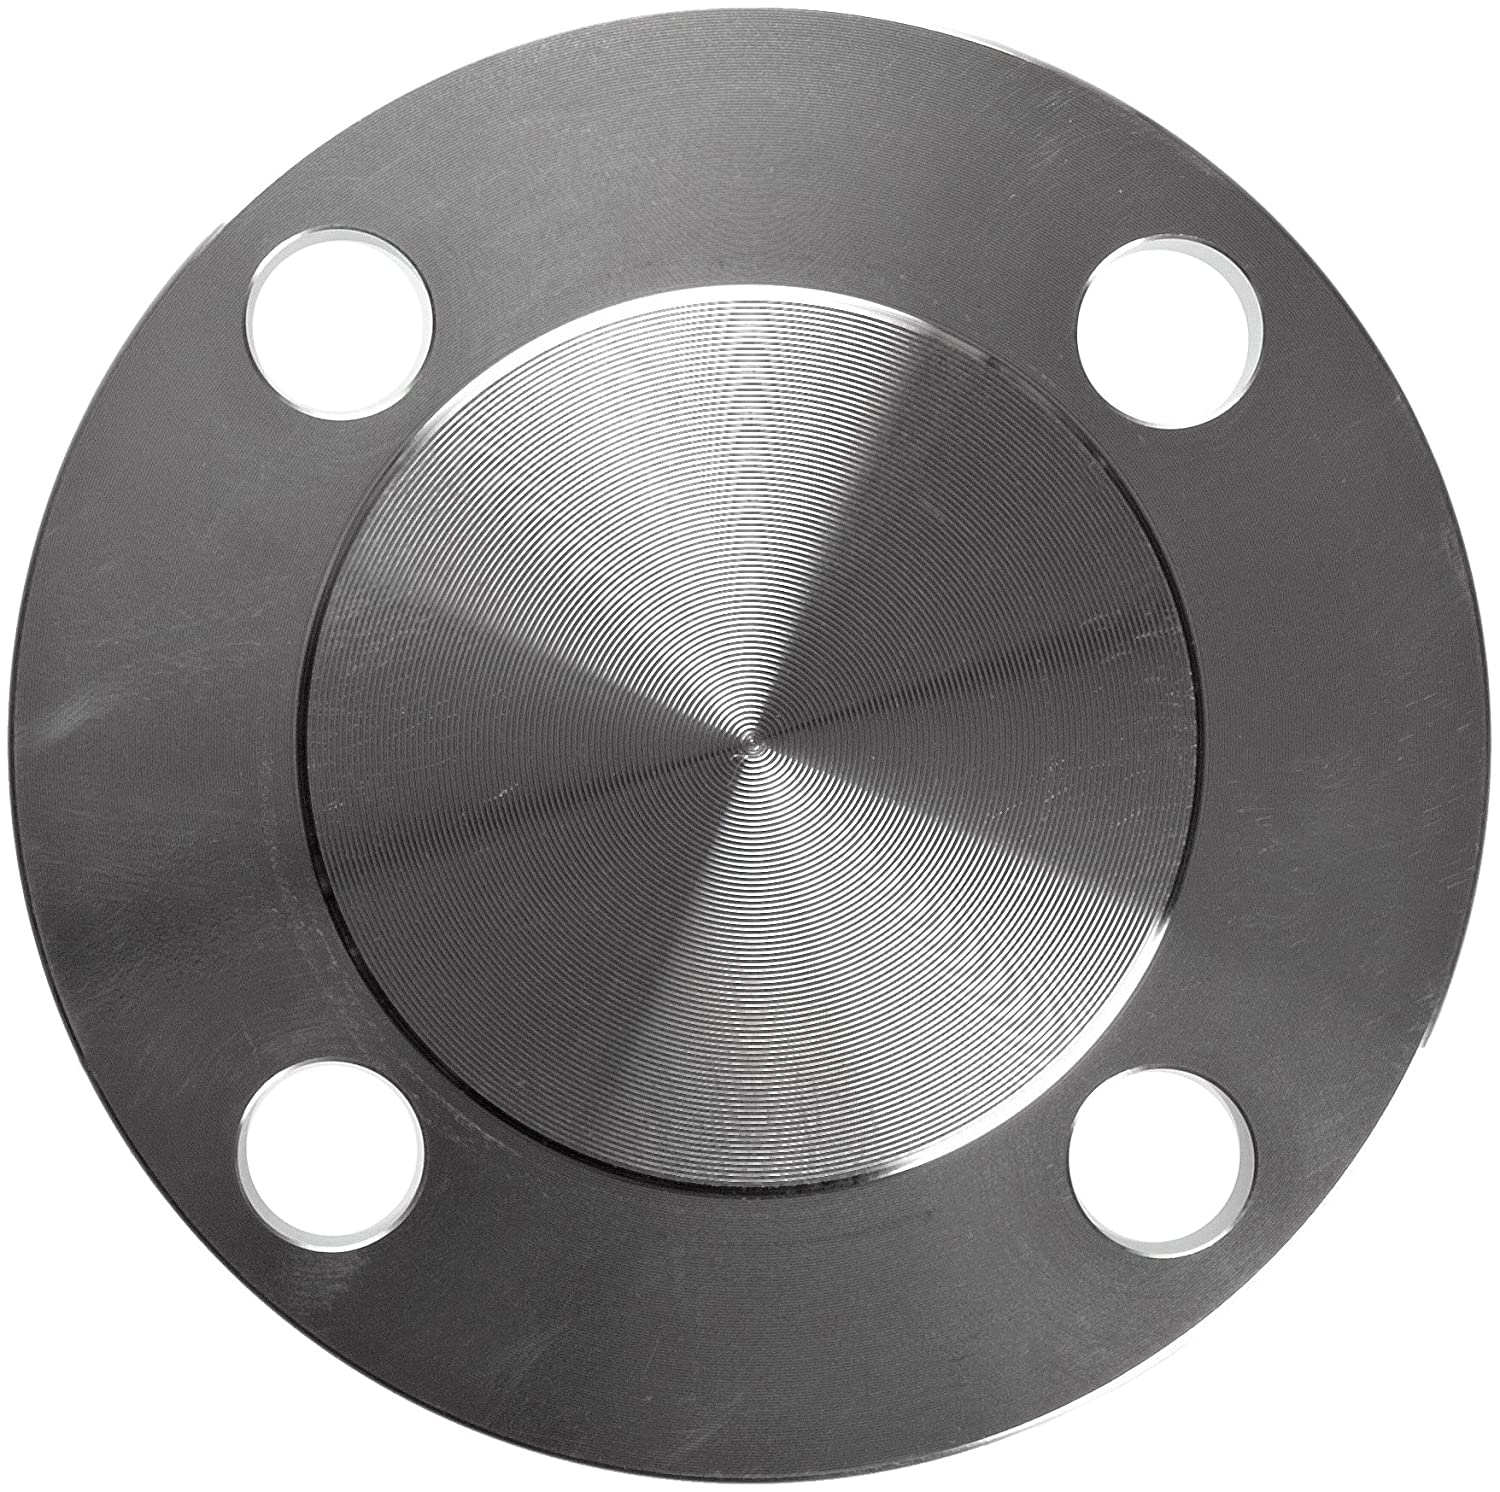 Class 150 Stainless Steel 304//304L Pipe Fitting Blind Flange 2 Pipe Size 2 Pipe Size Merit Brass A435BL-32